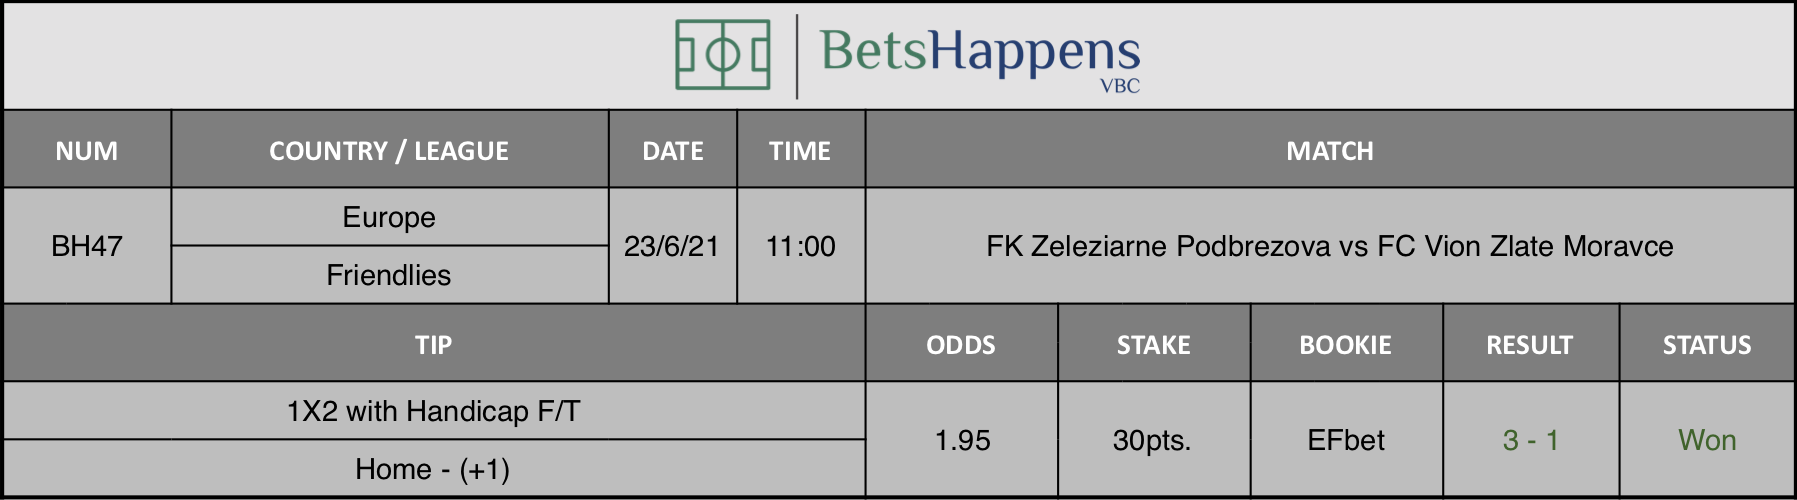 Results of our tip for the FK Zeleziarne Podbrezova vs FC Vion Zlate Moravce match 1X2 with Handicap F/T Home - (+1) is recommended.